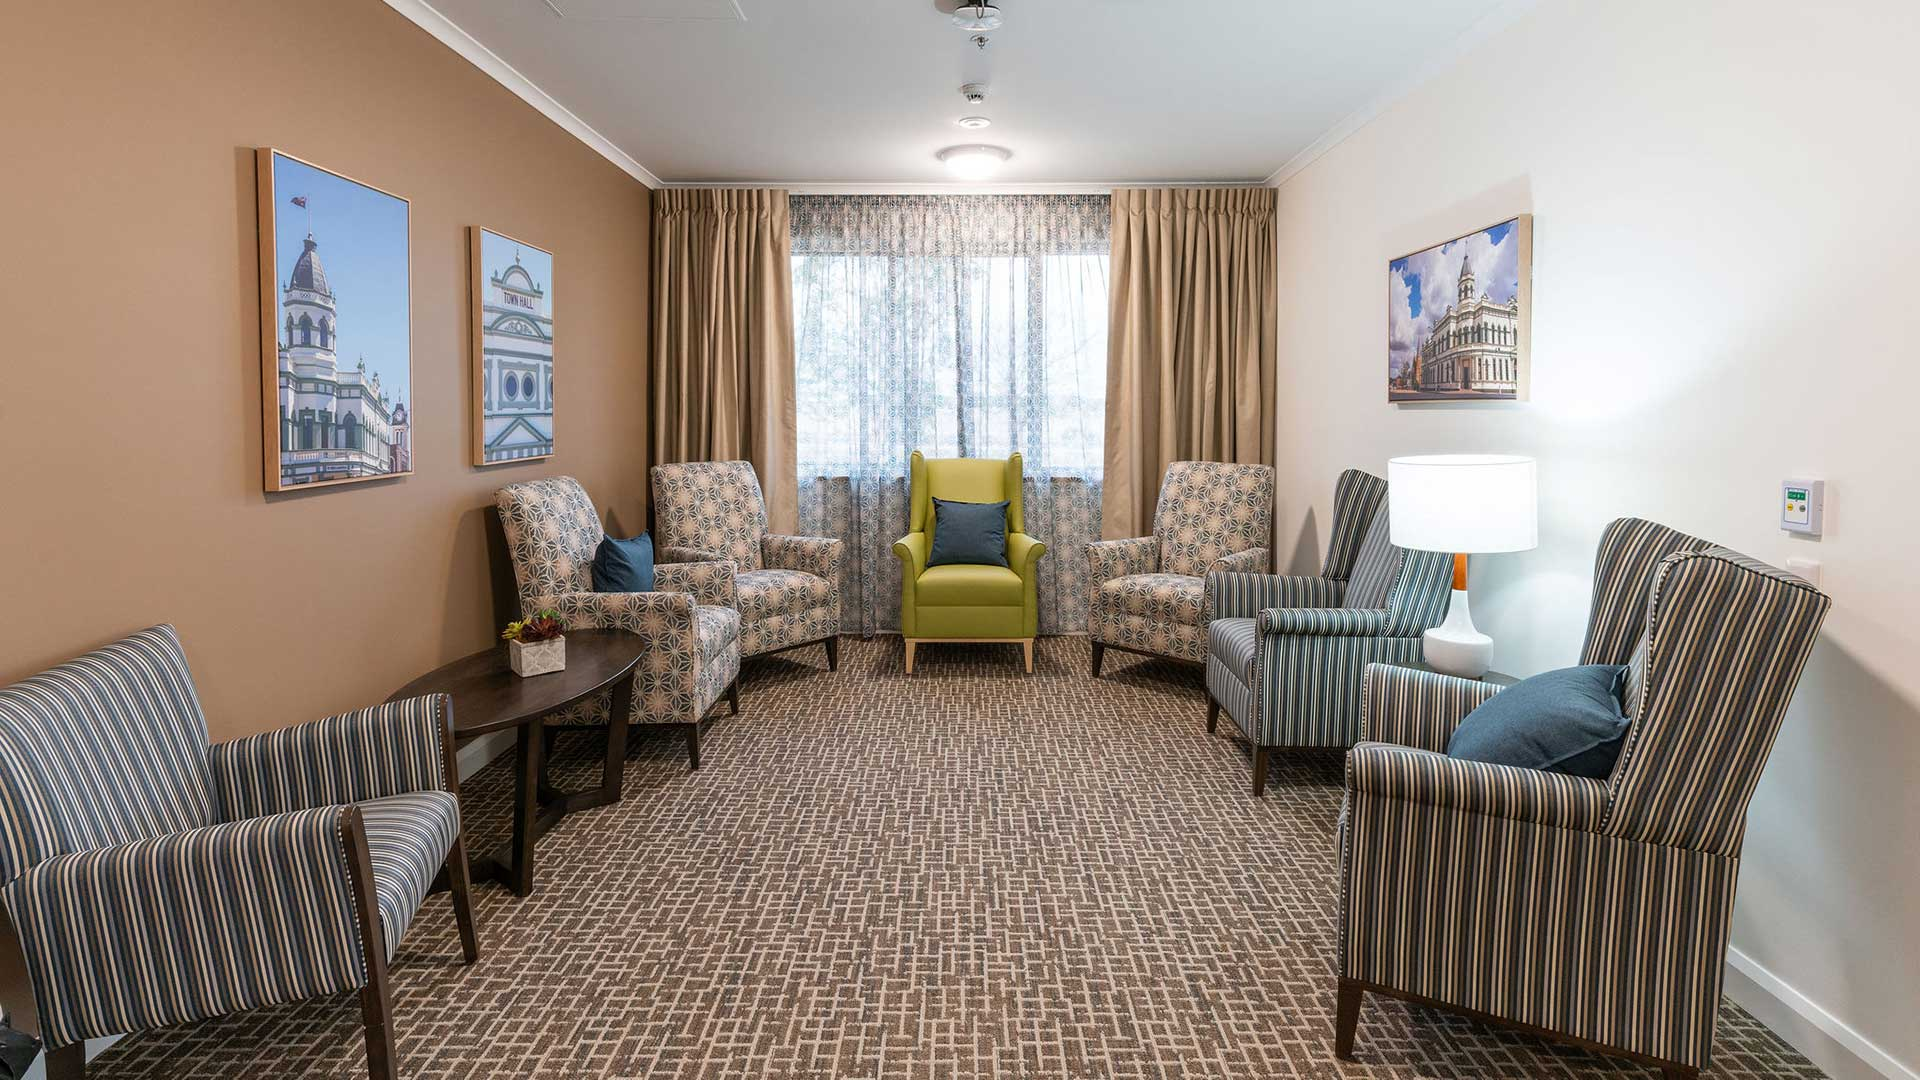 Jemalong Retirement Village - Living Area | Hines Constructions, Central West NSW